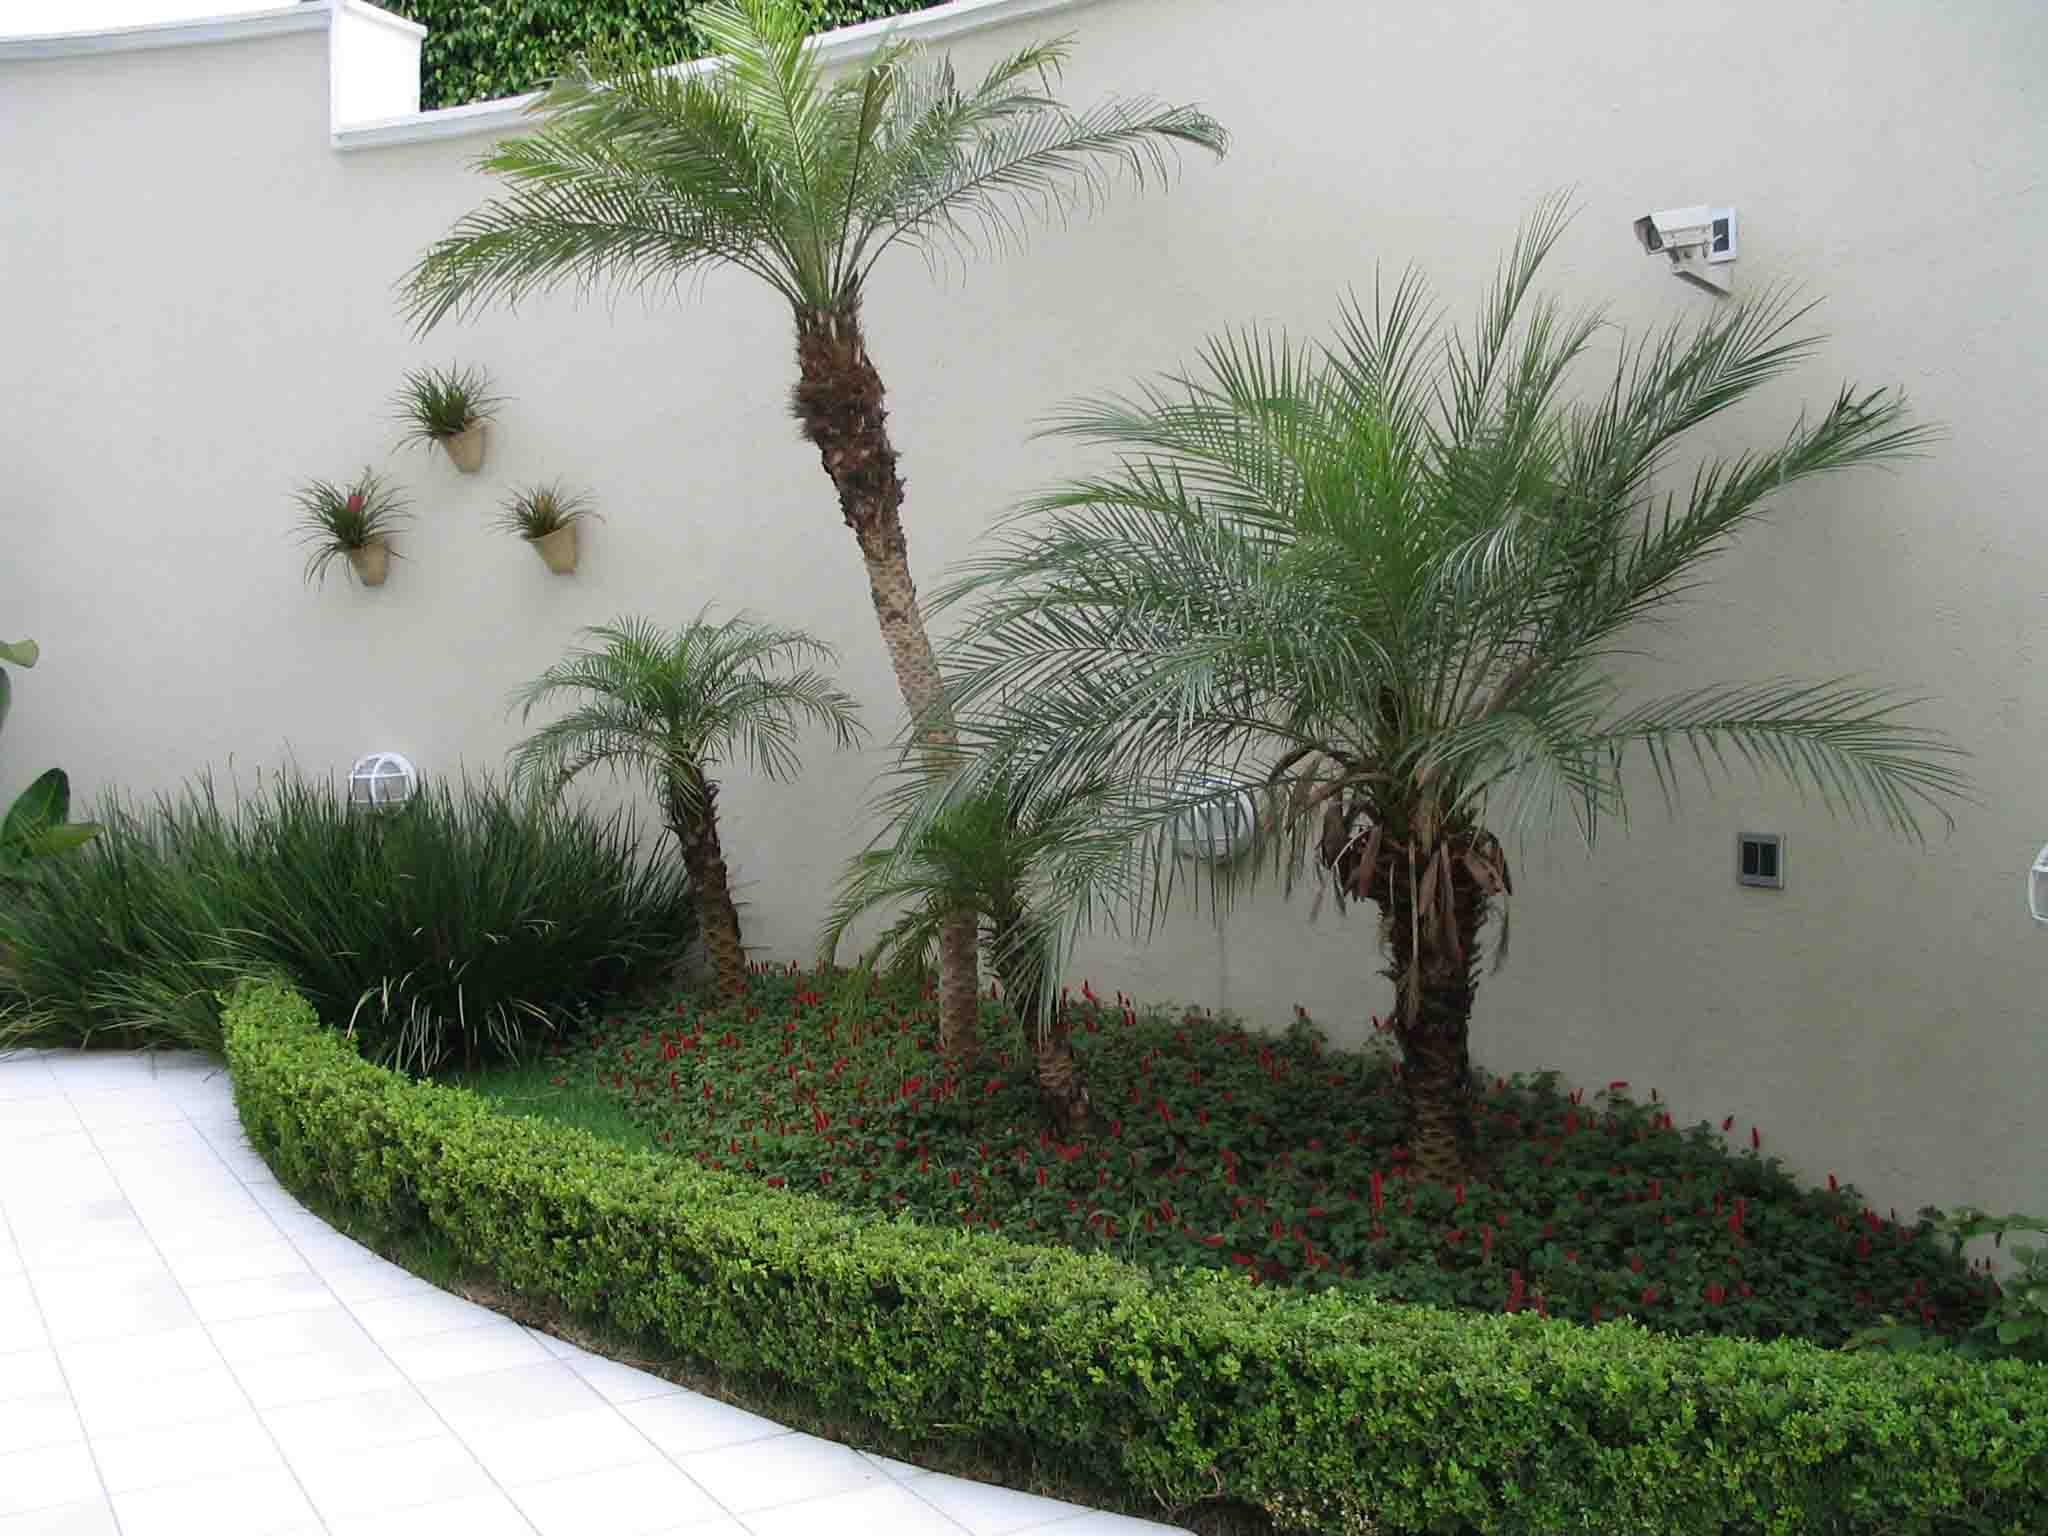 Jardim Pequeno Fotos Pictures To Pin On Pinterest  All about loving